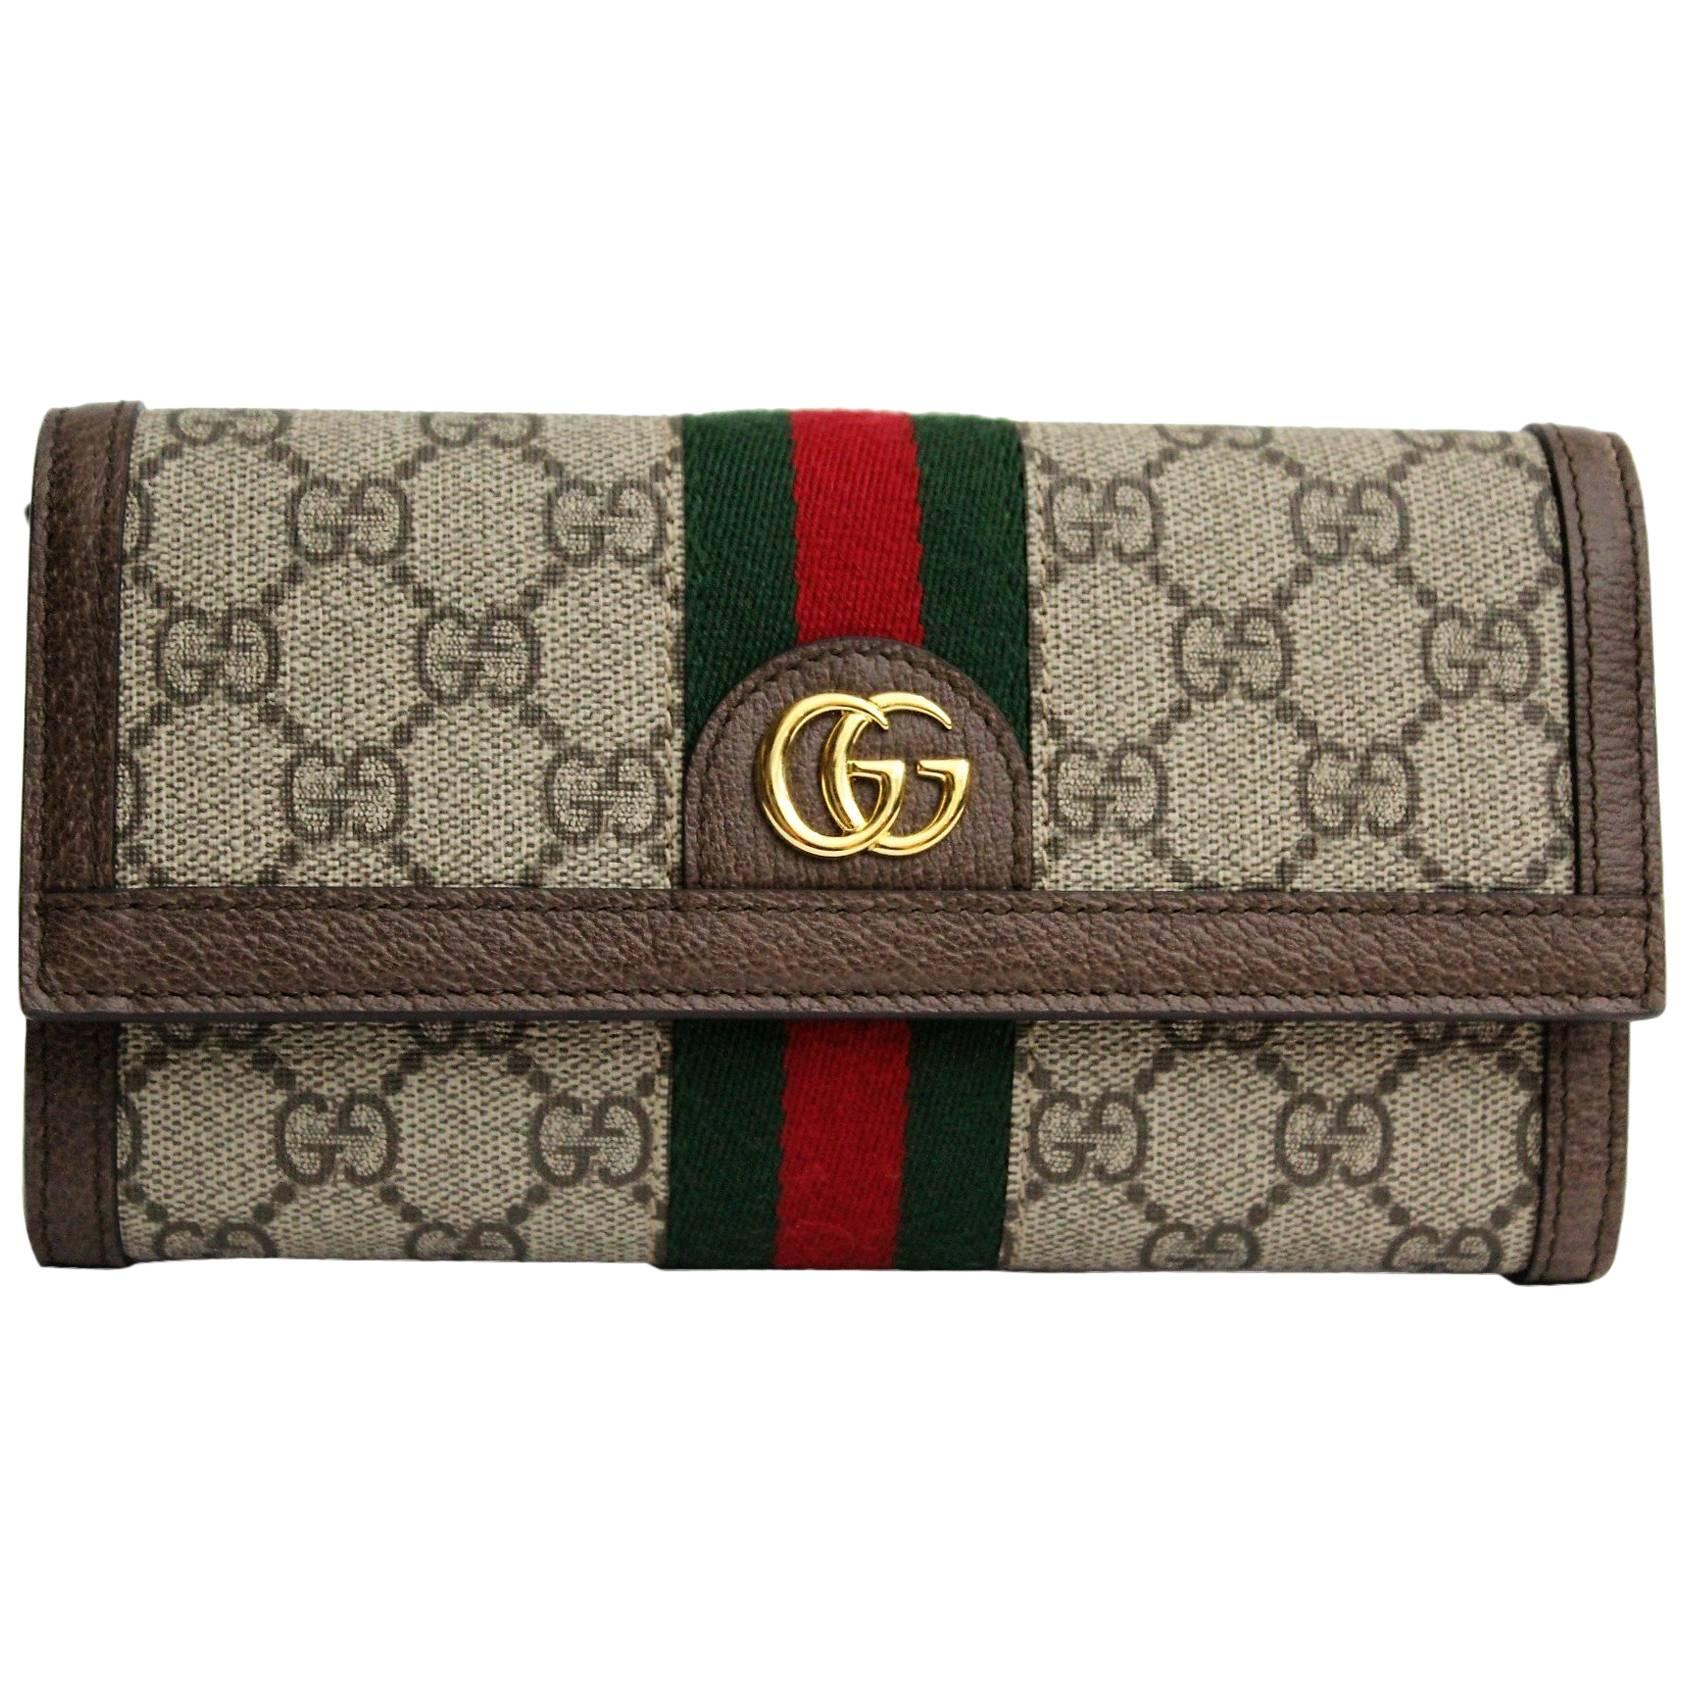 a485bb7572a5e7 Gucci Ophidia GG continental wallet at 1stdibs